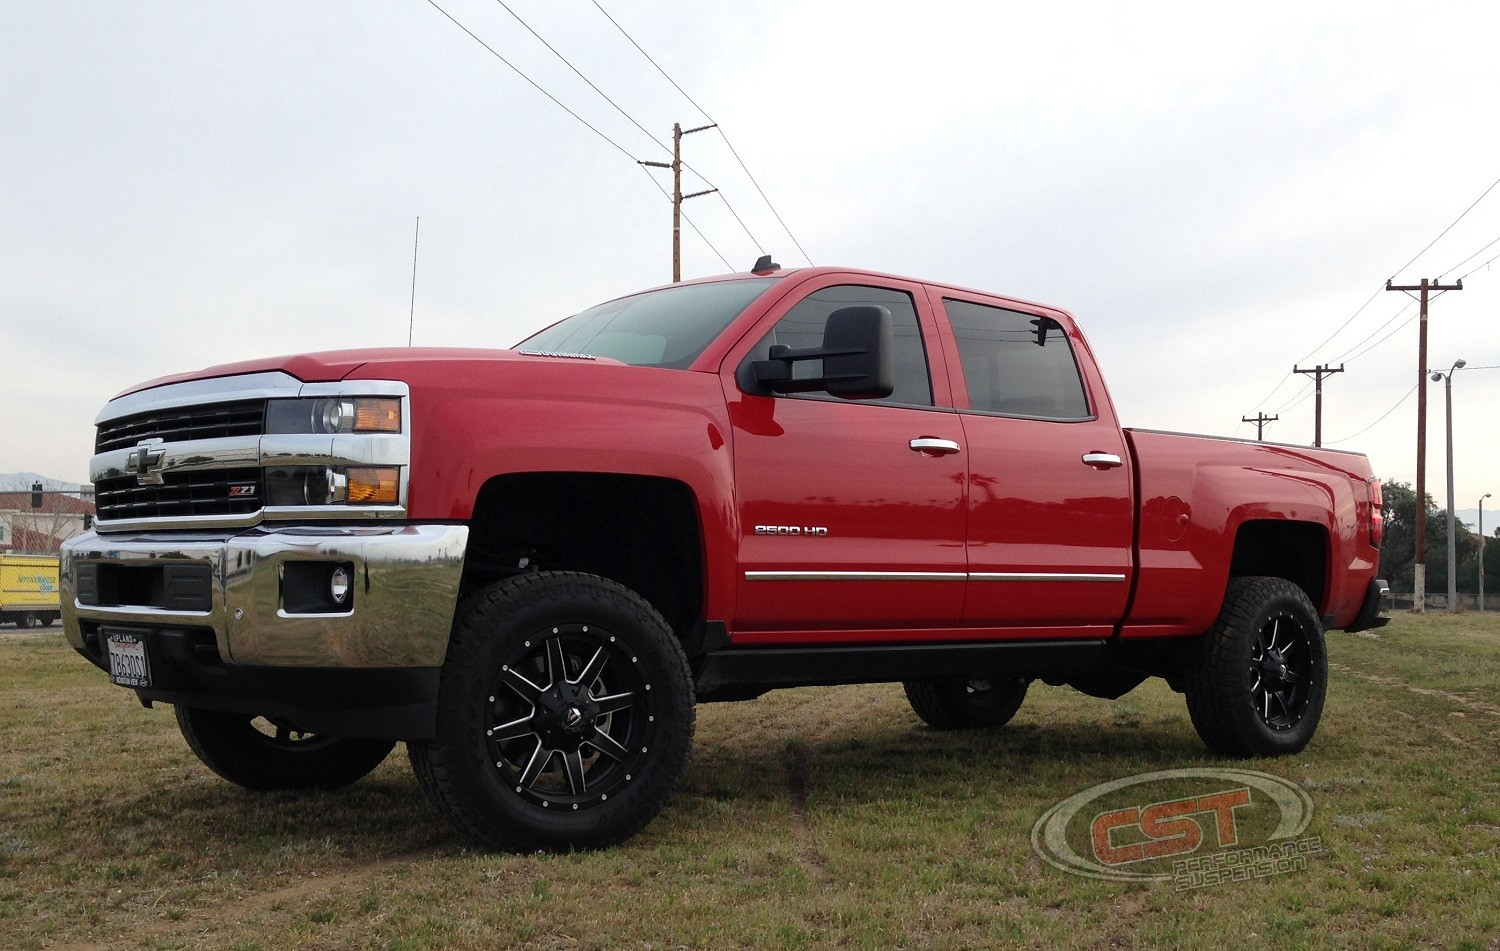 2011 2017 chevy silverado gmc sierra 2500hd 2wd and 4wd stl stock torsion location lift kit w 2 0 emulsion shocks by cst suspension 3 6 front lift 1